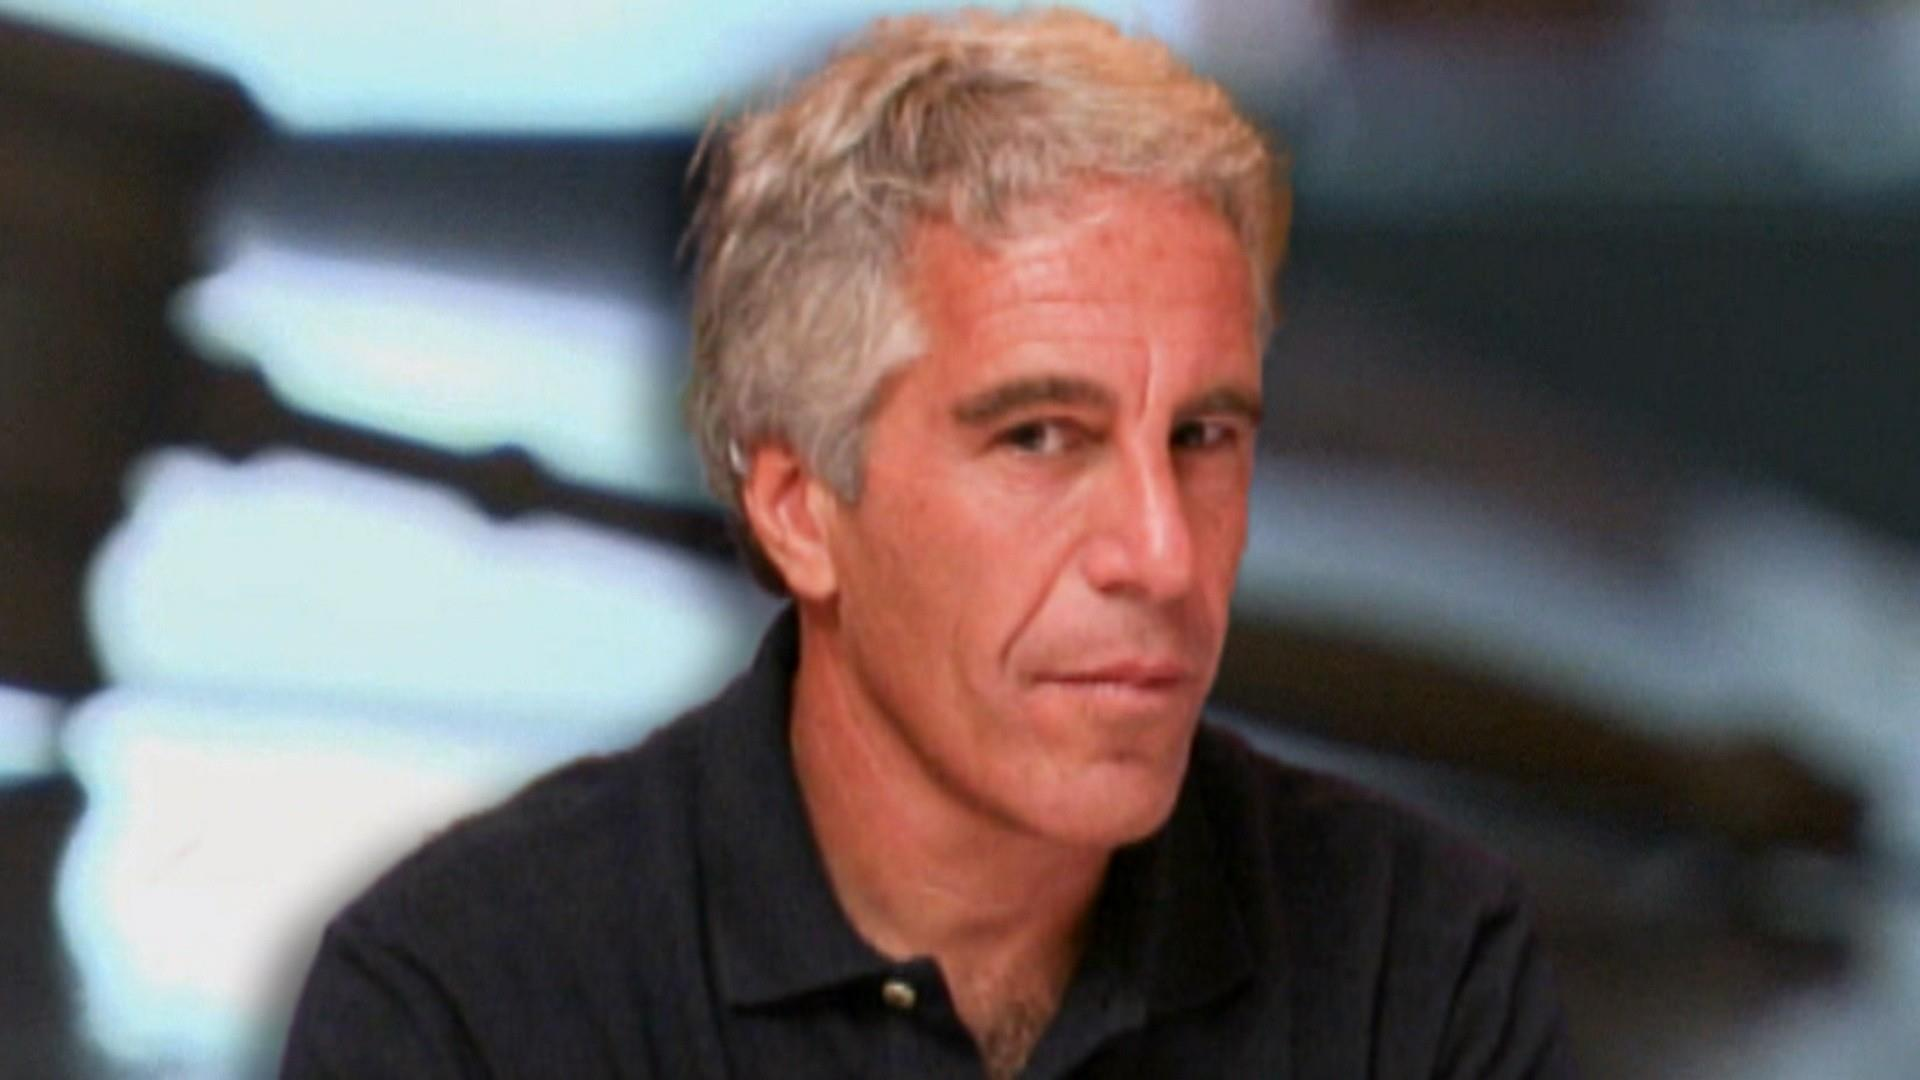 Jeffrey Epstein case: Judge rules federal prosecutors broke law